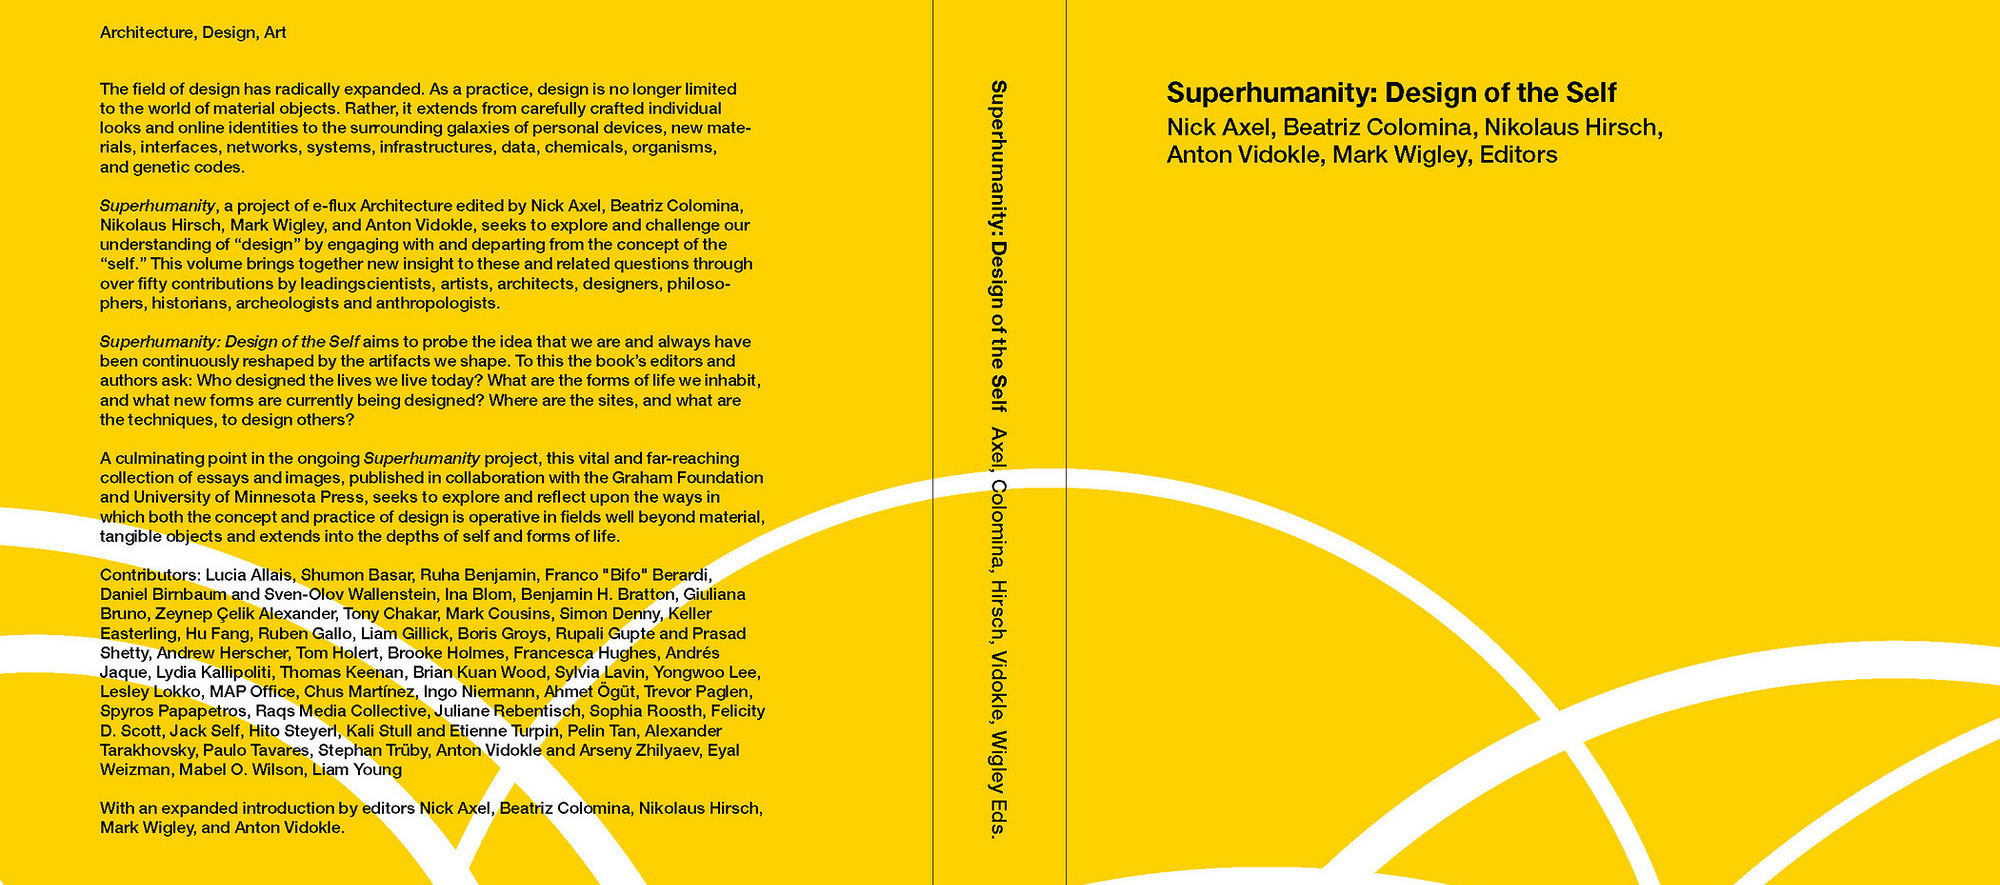 Portada de Superhumanity: Design of the Self. Diseño de portada por Liam Gillick